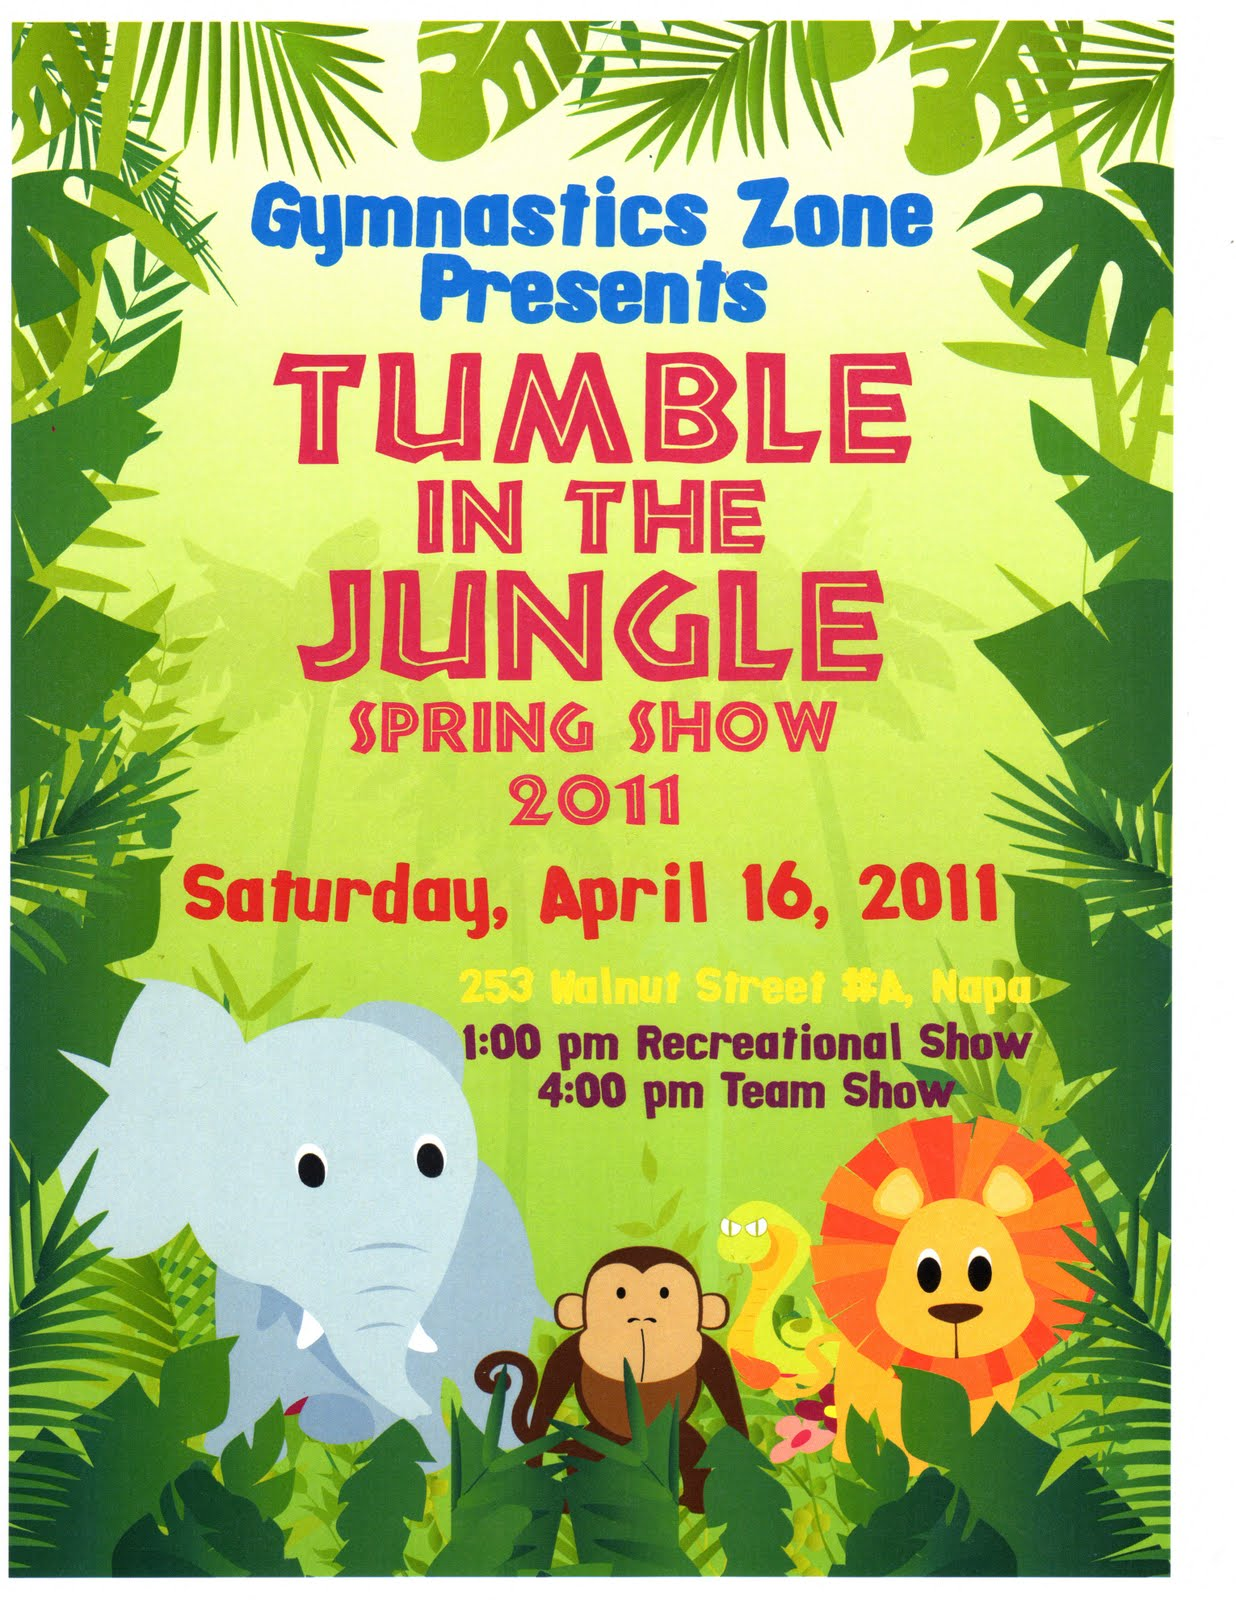 tumble in the jungle gymnastics meet 2011